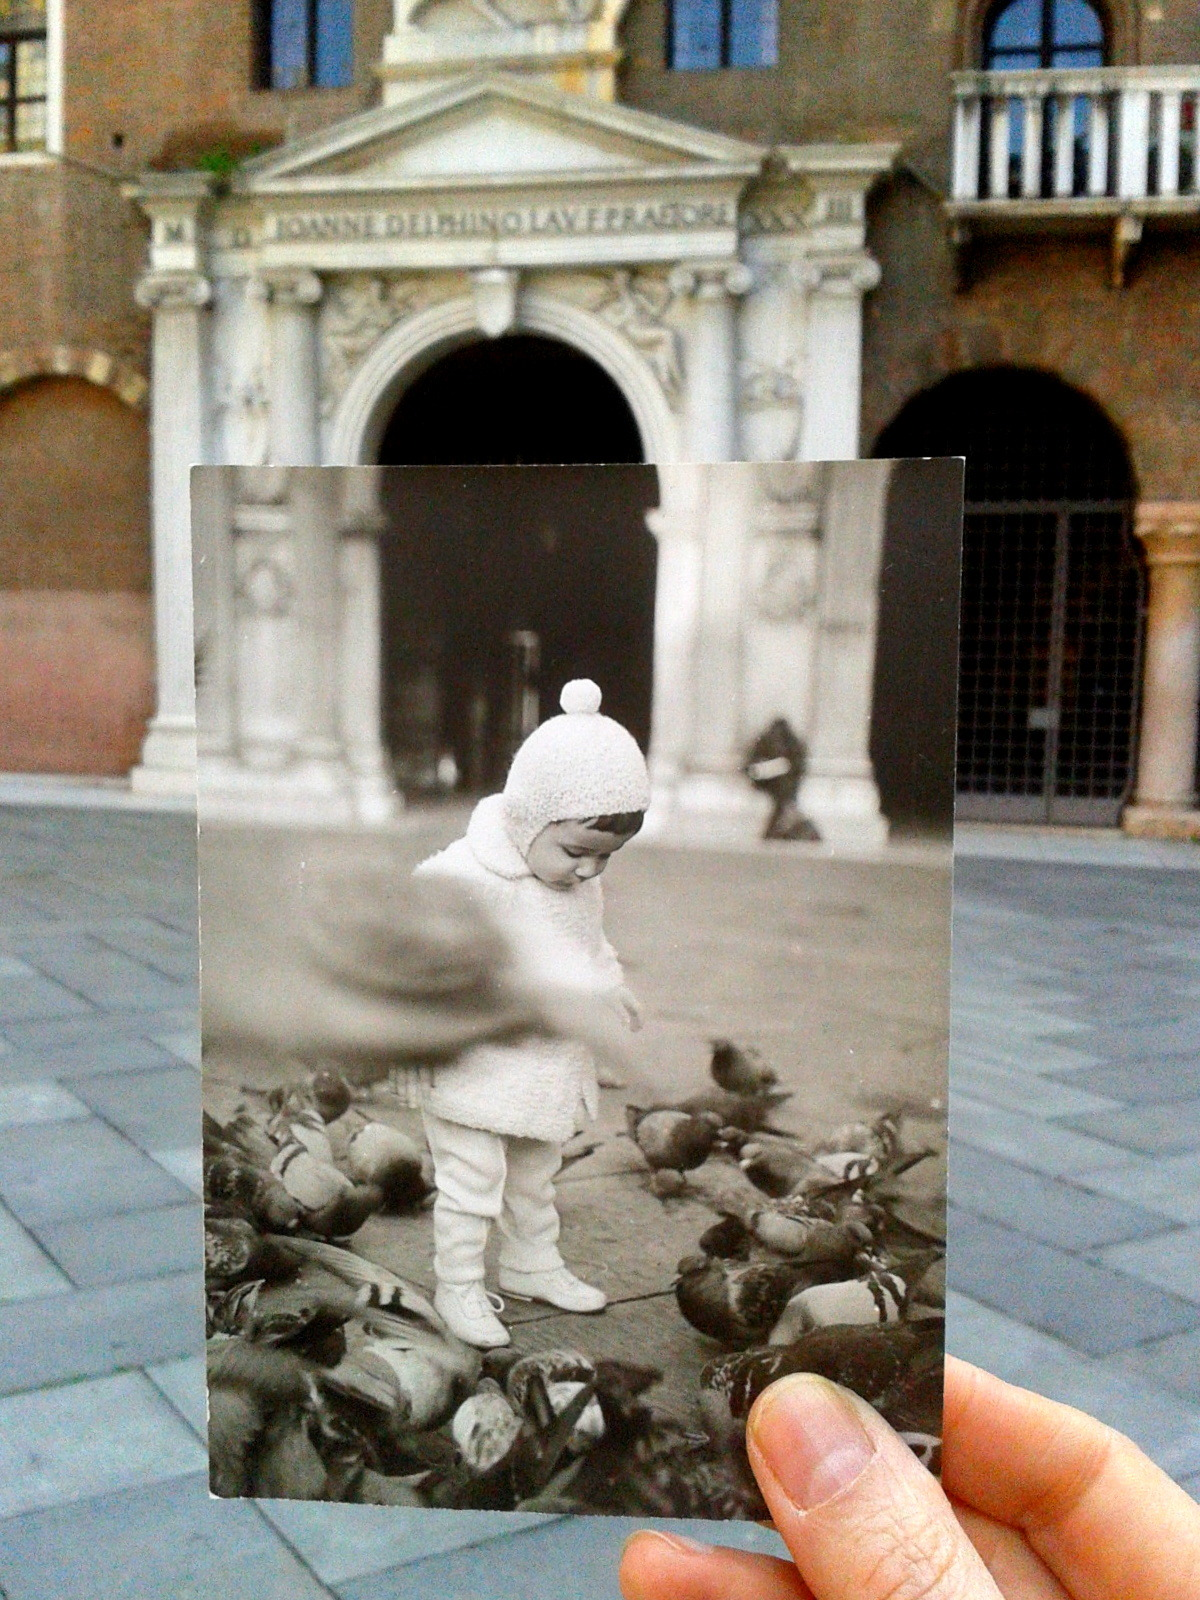 Dear Photograph,This is me in the far 1962. I was in Piazza dei Signori (Lord's Square) in Verona, Italy. I was giving corn seeds to the pigeons. Now it's forbidden…Annalisa